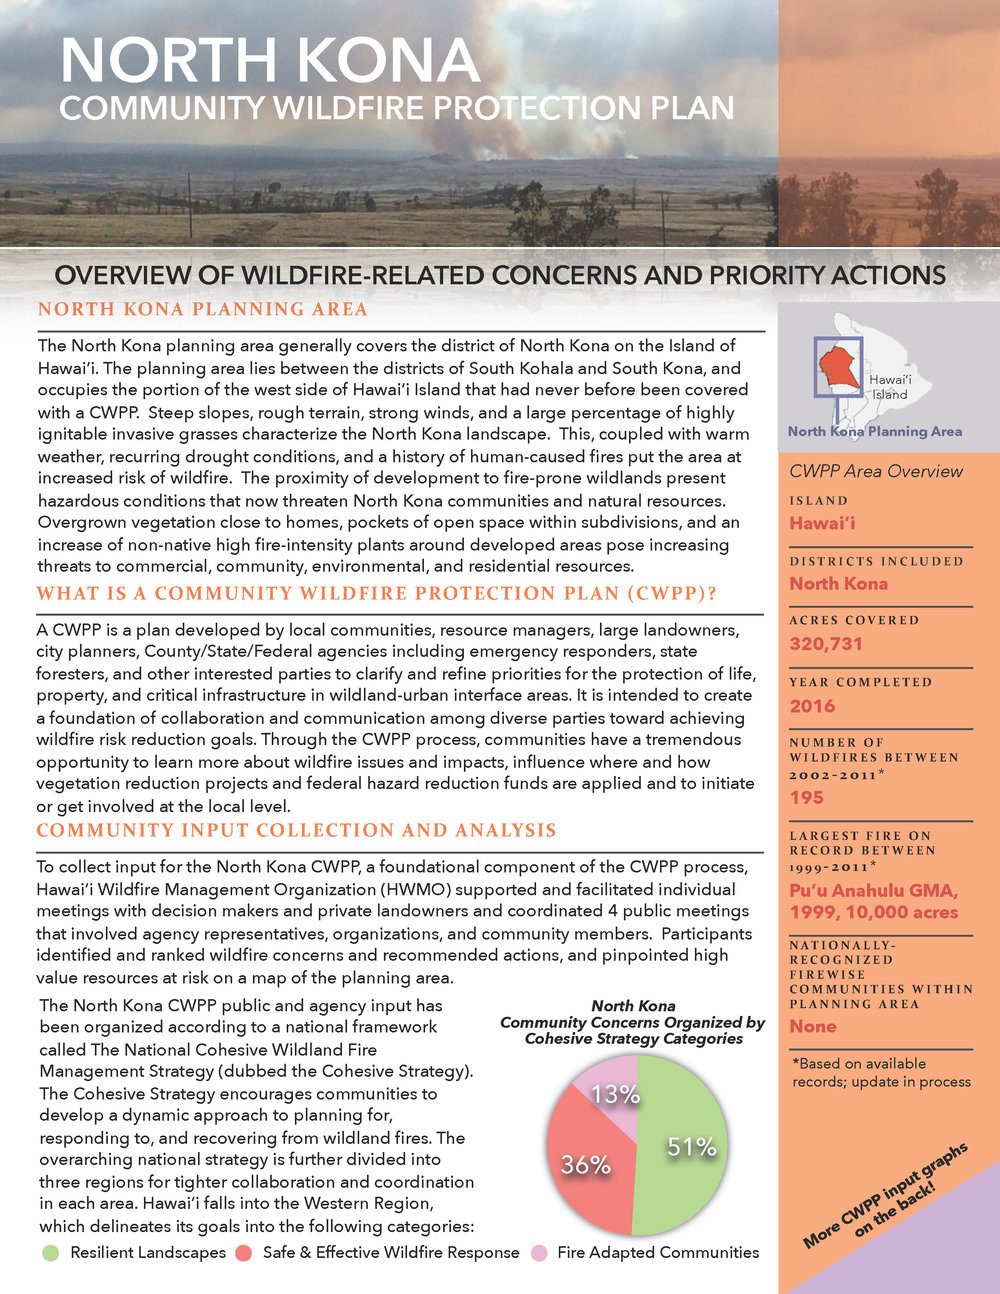 2018_4_18_CWPP Concerns and Priorities Overview_North Kona_FINAL_HWMO_Page_1.jpg